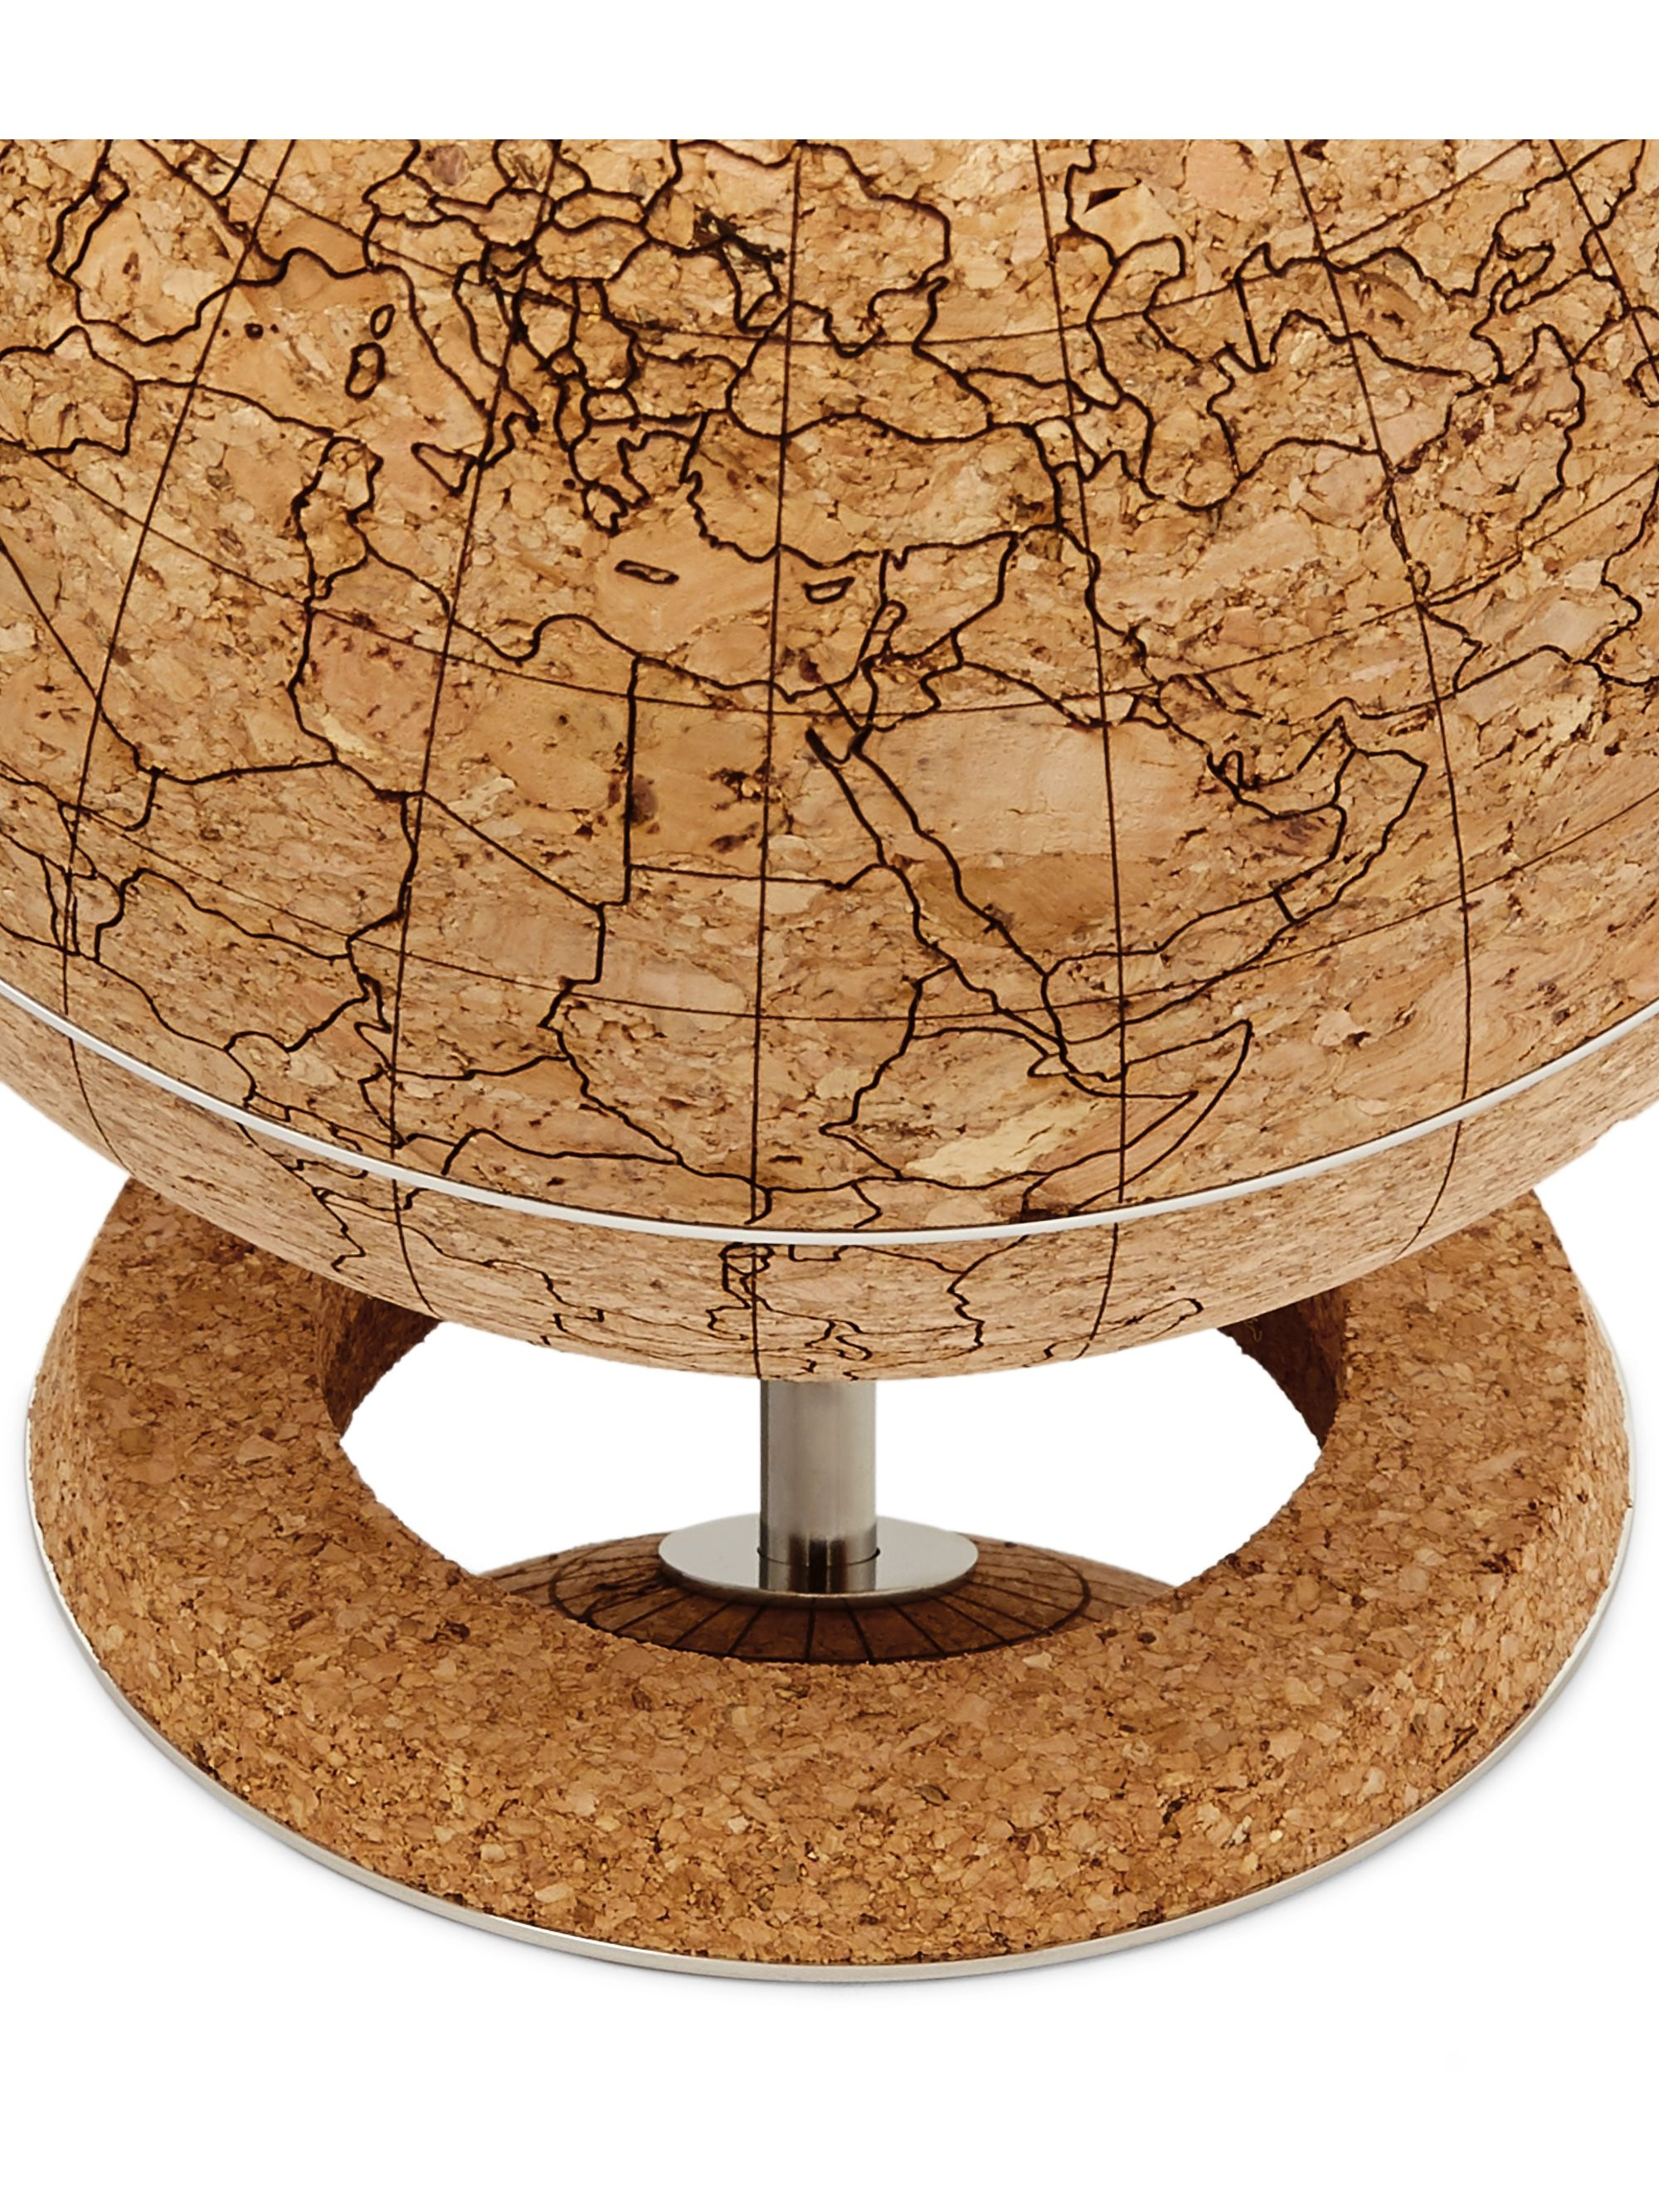 Brunello Cucinelli Printed Cork and Stainless Steel Globe